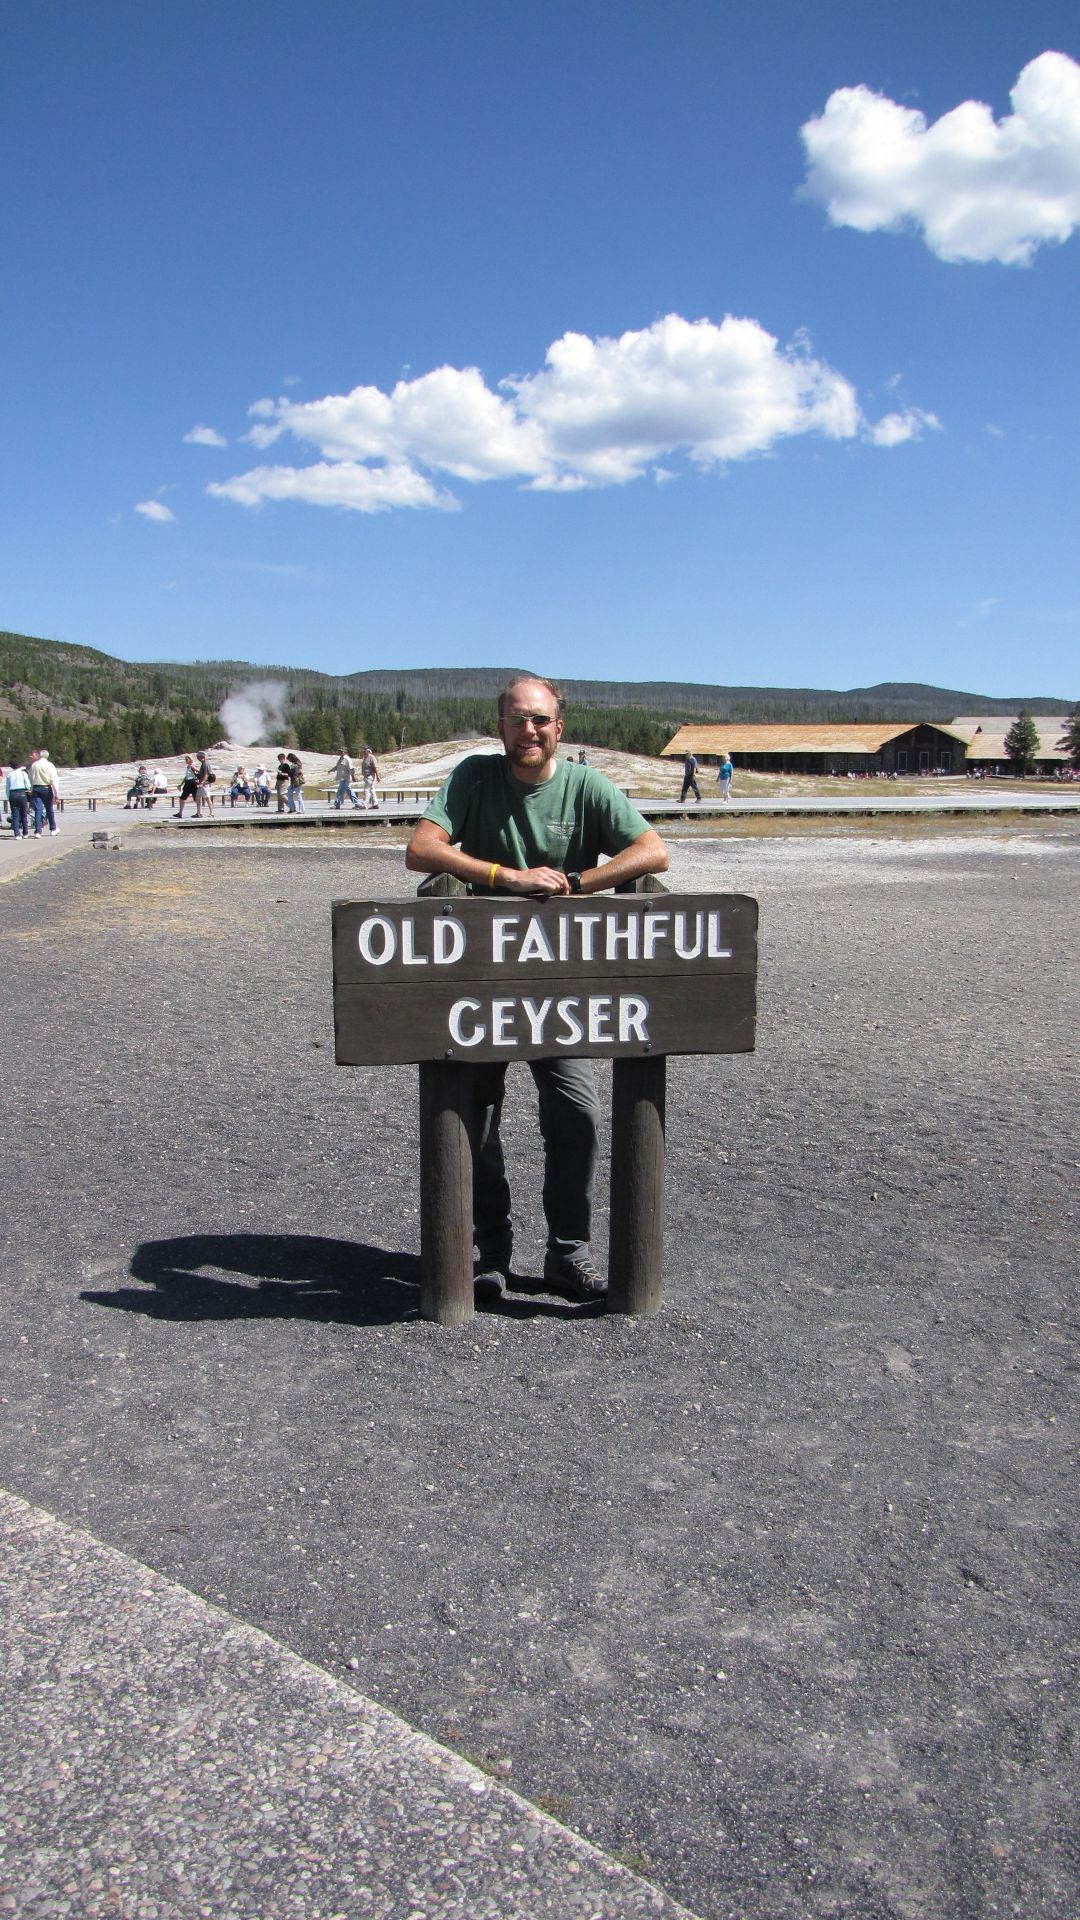 Yellowstone Nat Pk, WY, USA - Ey! Not so much of the \'geyser\' thank you!